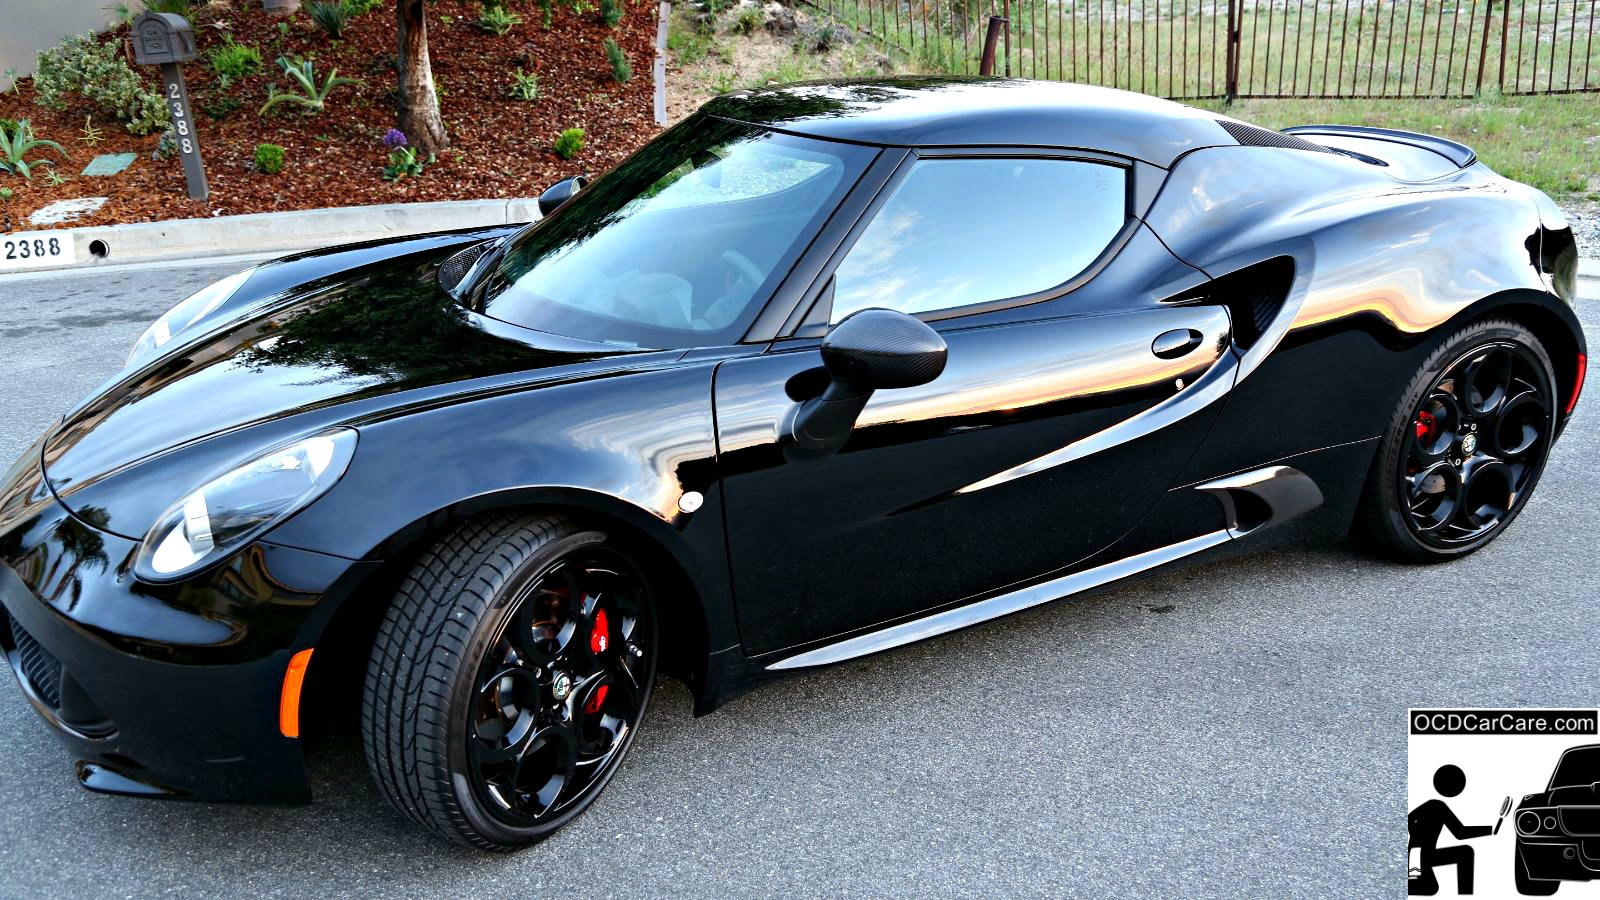 This Alfa Romeo 4C glows at dusk due to OCDCarCare Los Angeles paint correction & Nano Coating.